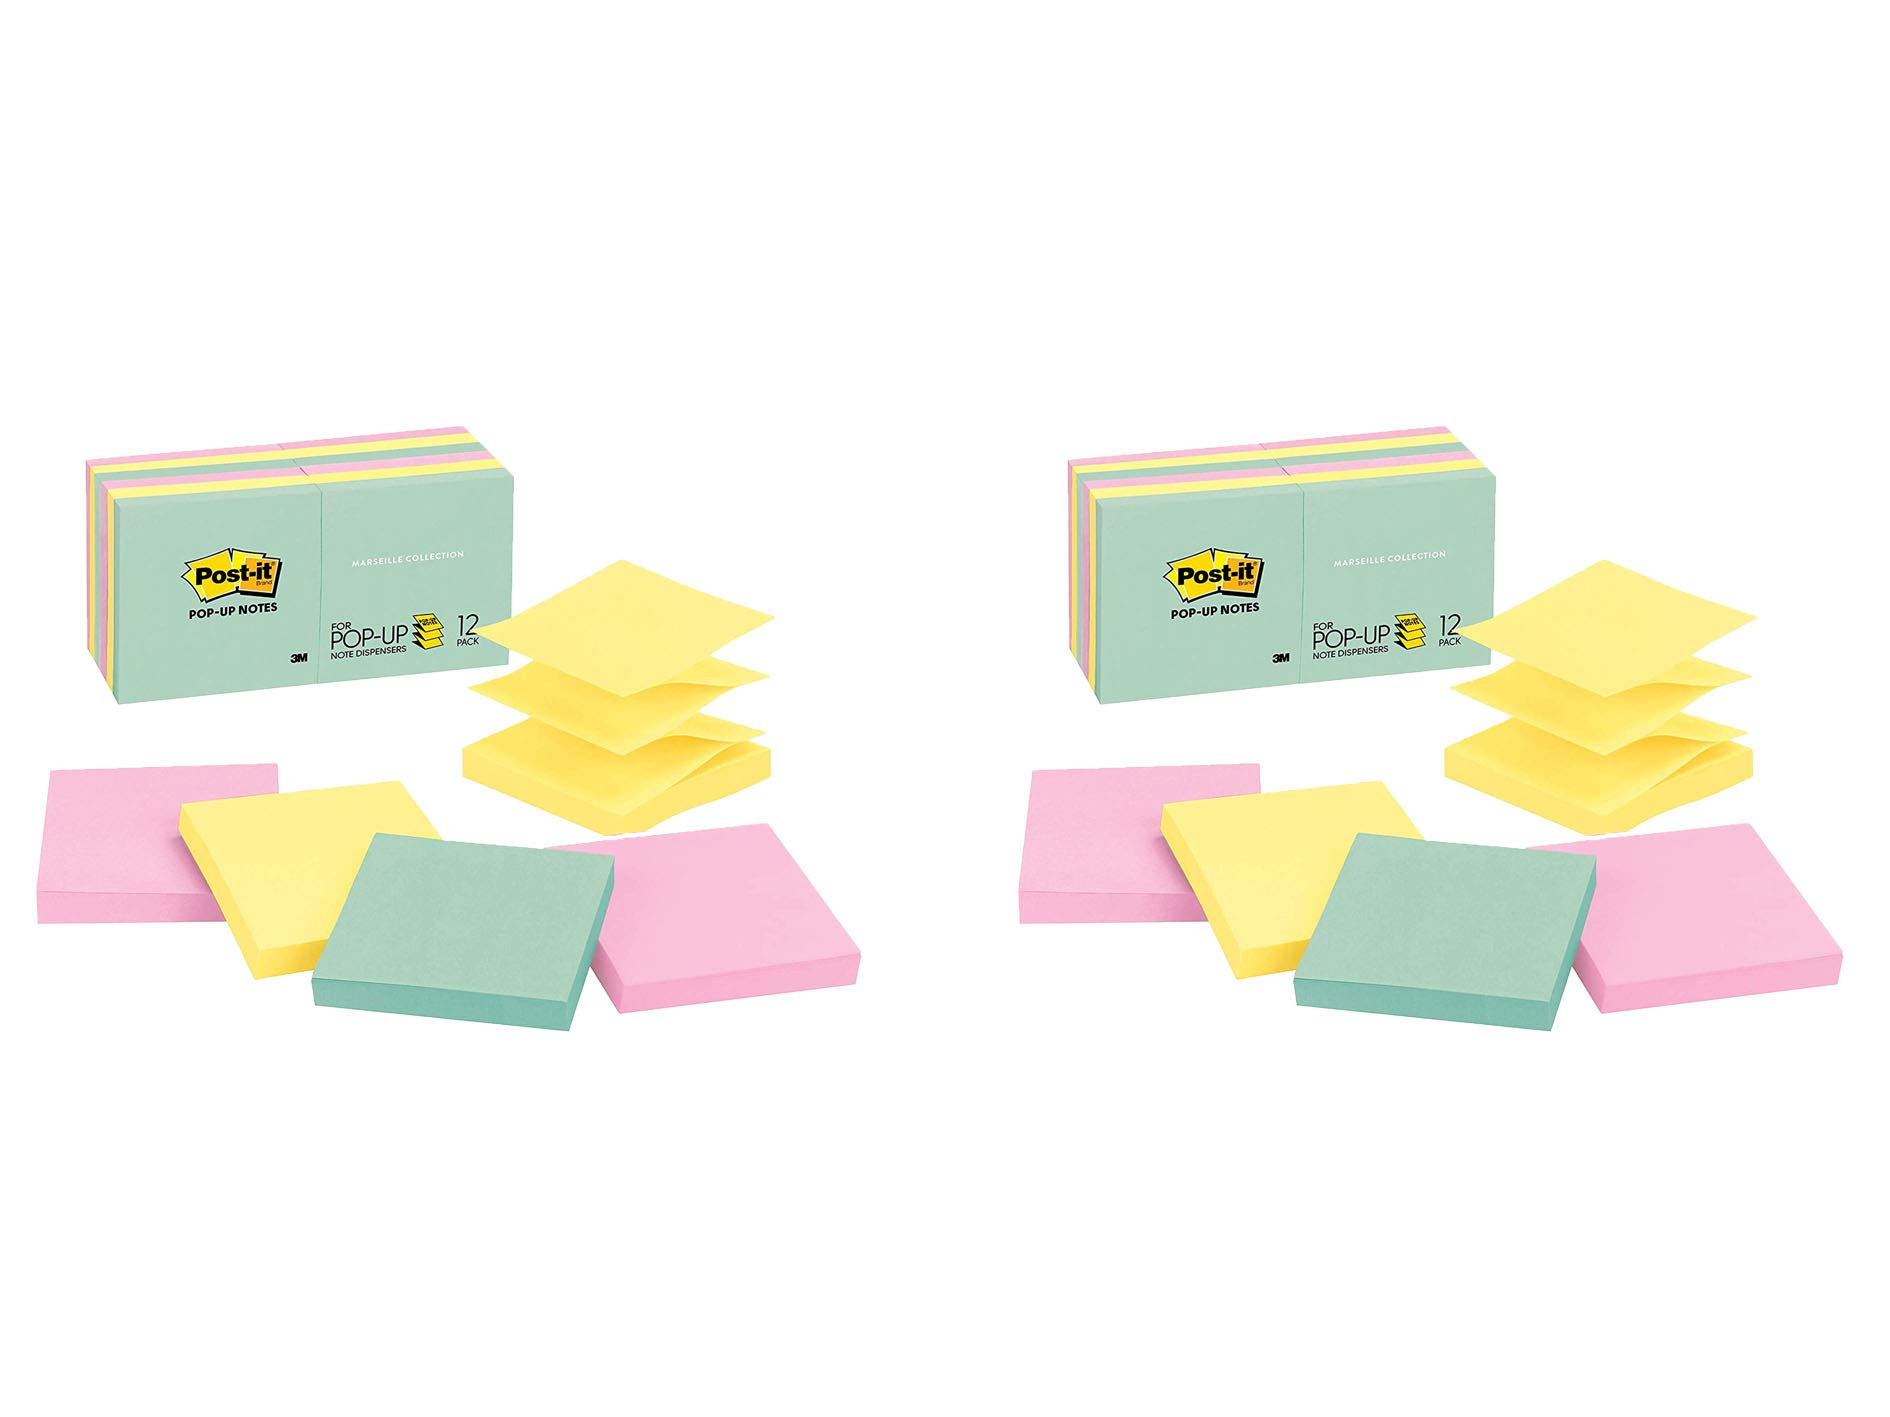 Post-it Pop-up Notes, Green, Pink, Canary Yellow, Blues, Designed for Pop-up Note Dispensers, Great for Reminders, 3 in. x 3 in, 12 Pads/Pack, 100 Sheets/Pad (R330-12AP), 2 Pack by Post-it